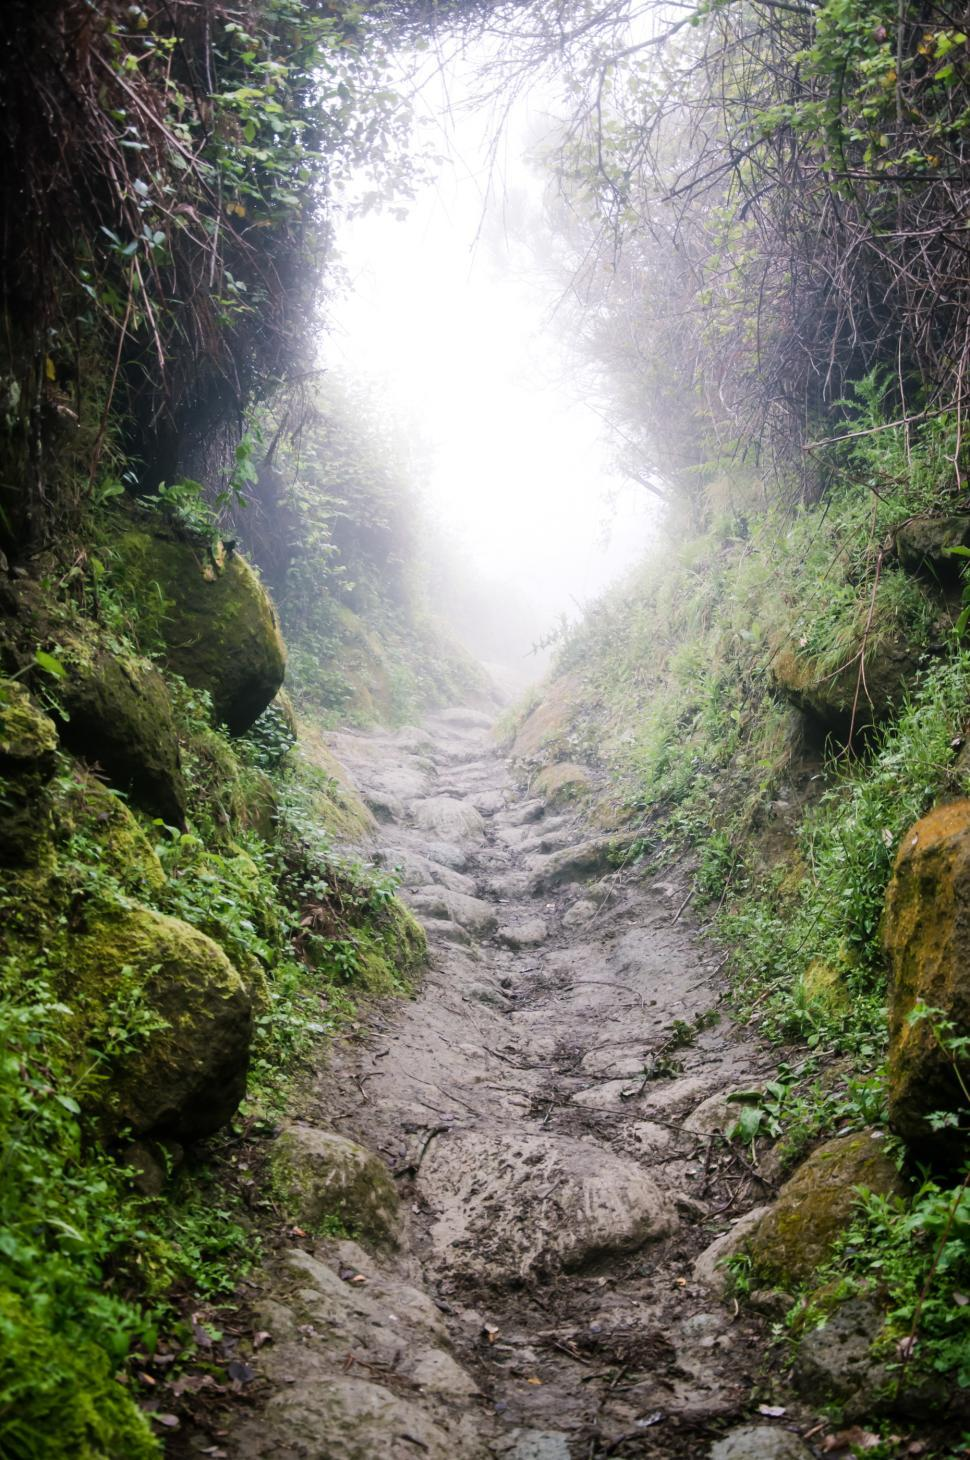 Download Free Stock HD Photo of misty path through mounting trail Online